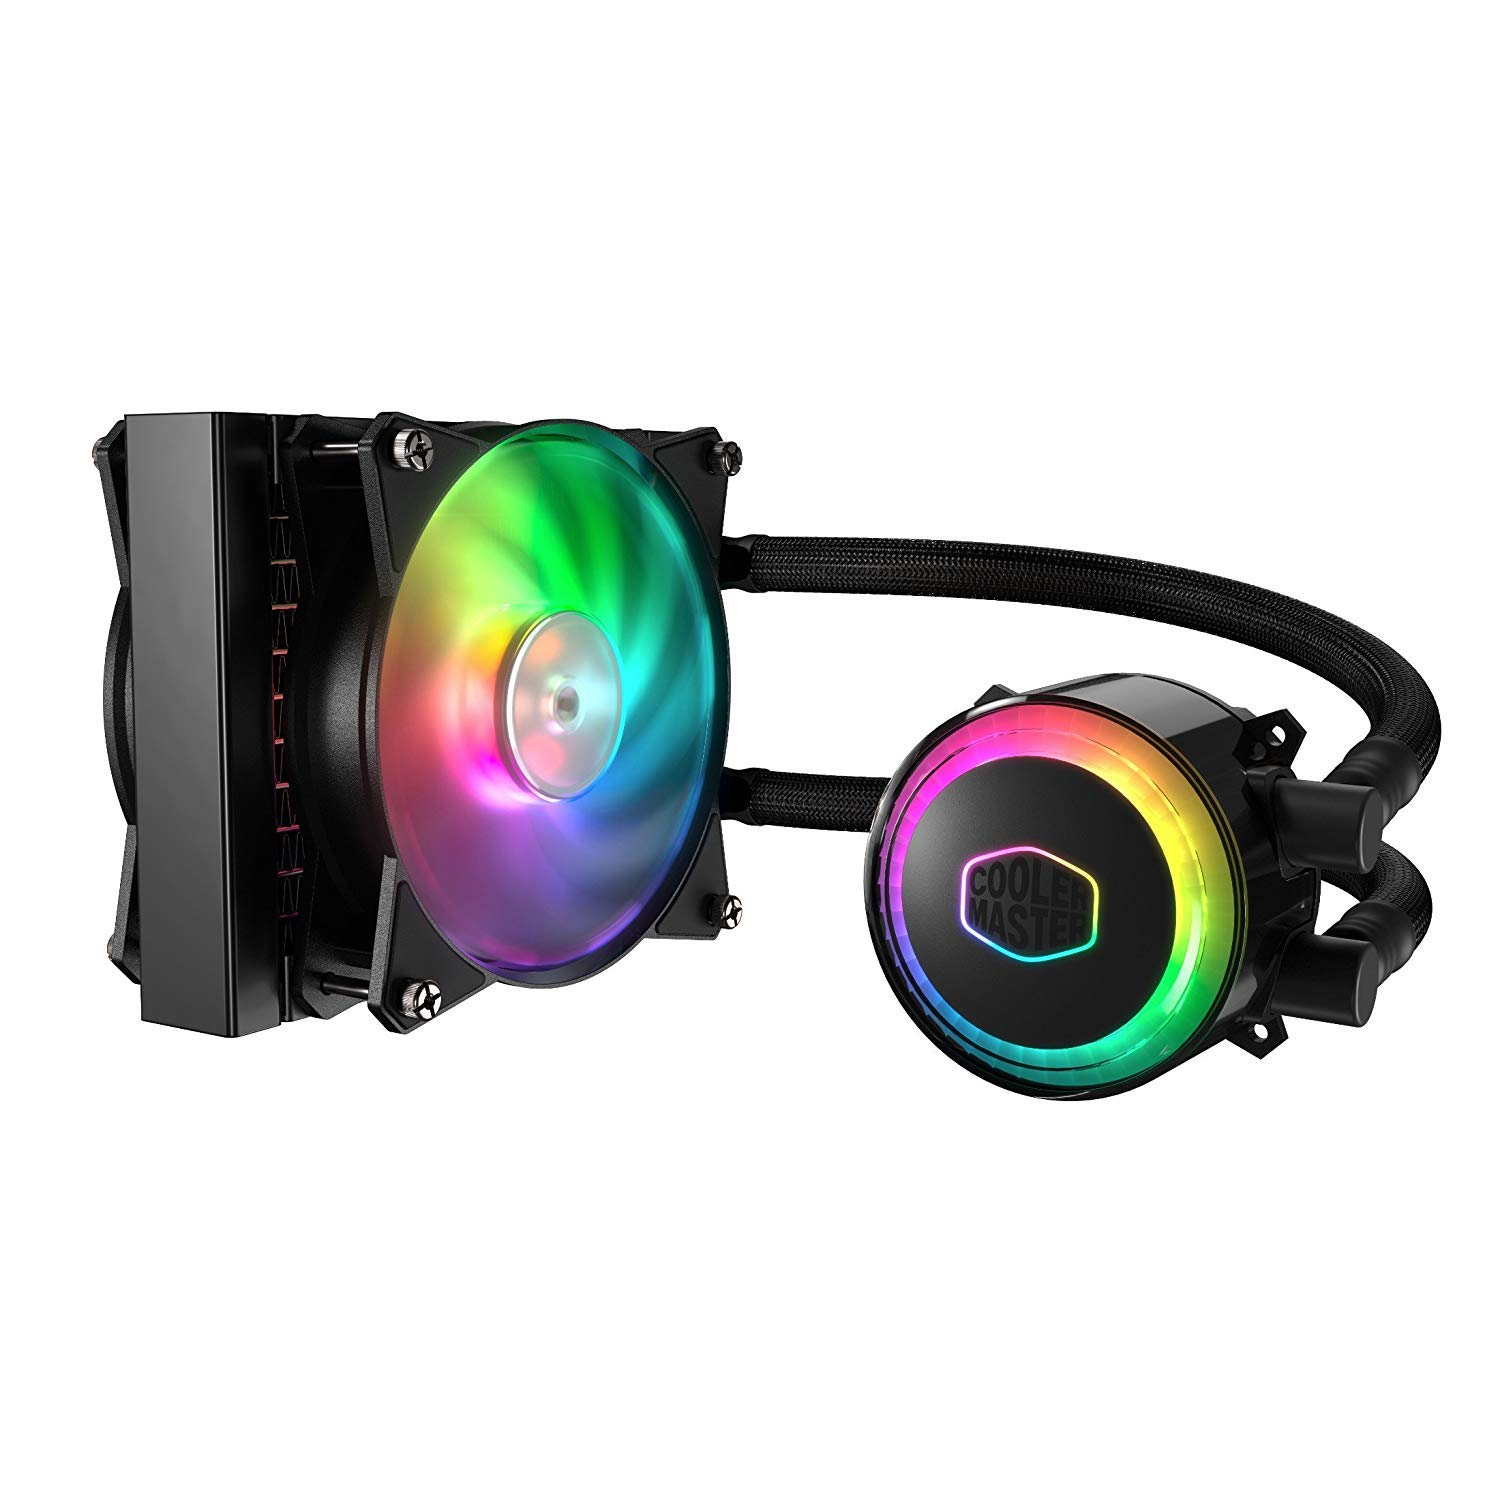 Cooler Master Masterliquid Ml120r Addressable Rgb All In House Wiring Sri Lanka One Cpu Liquid Dual Chamber Intel Amd Support Cooling Mlx D12m A20pc R1